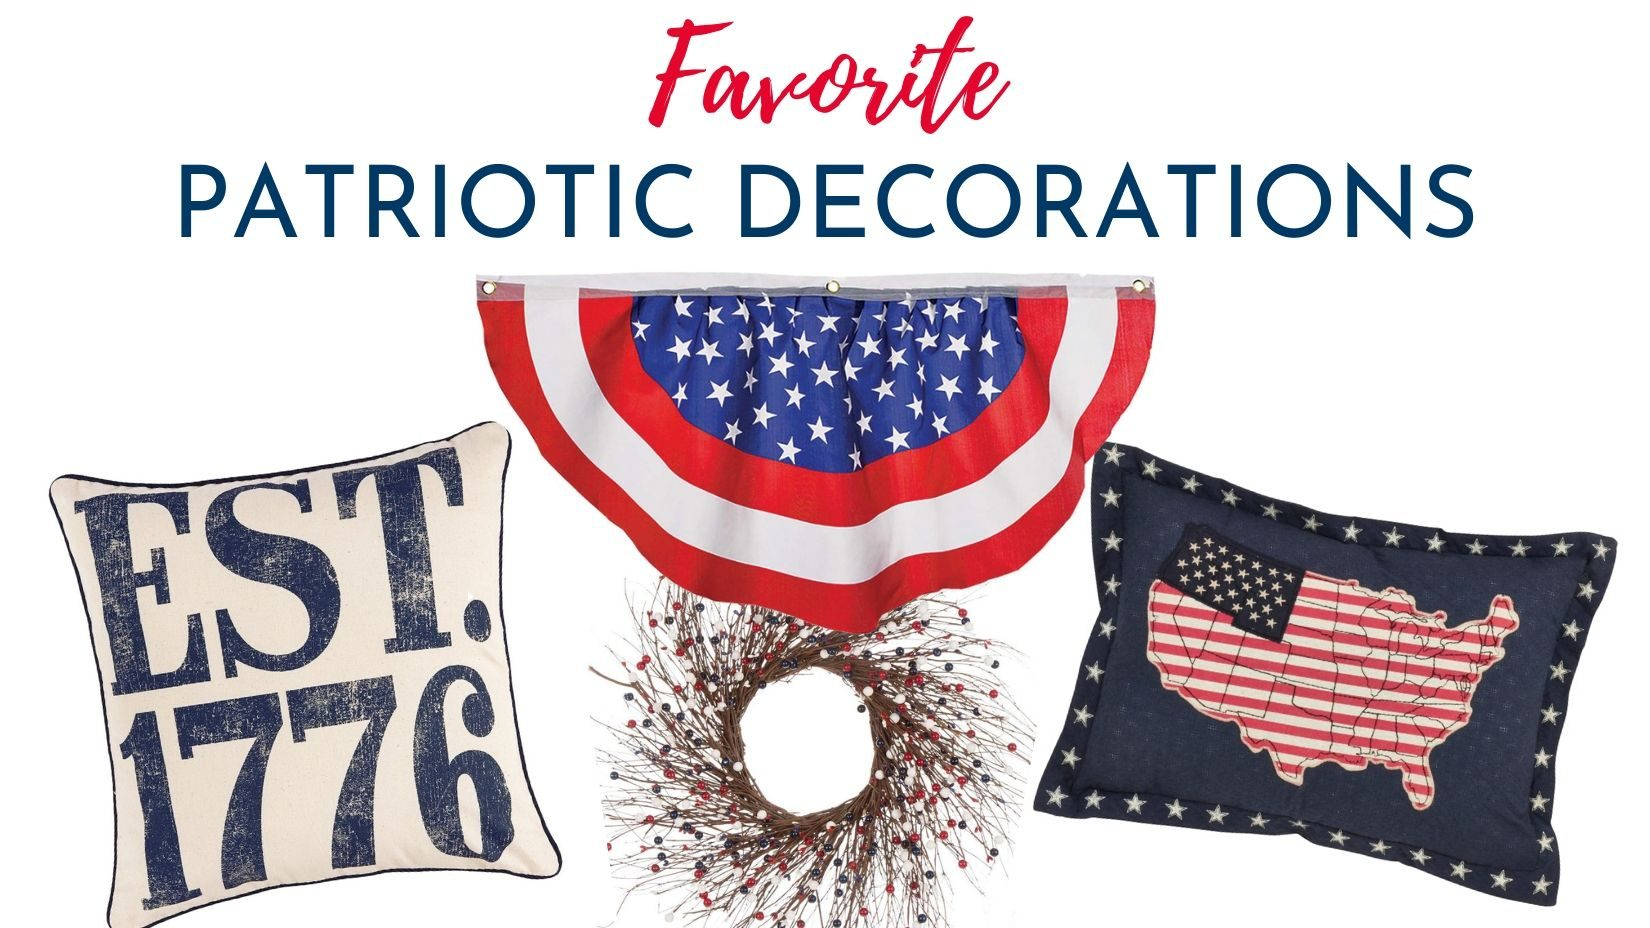 Favorite Patriotic Decorations for Home